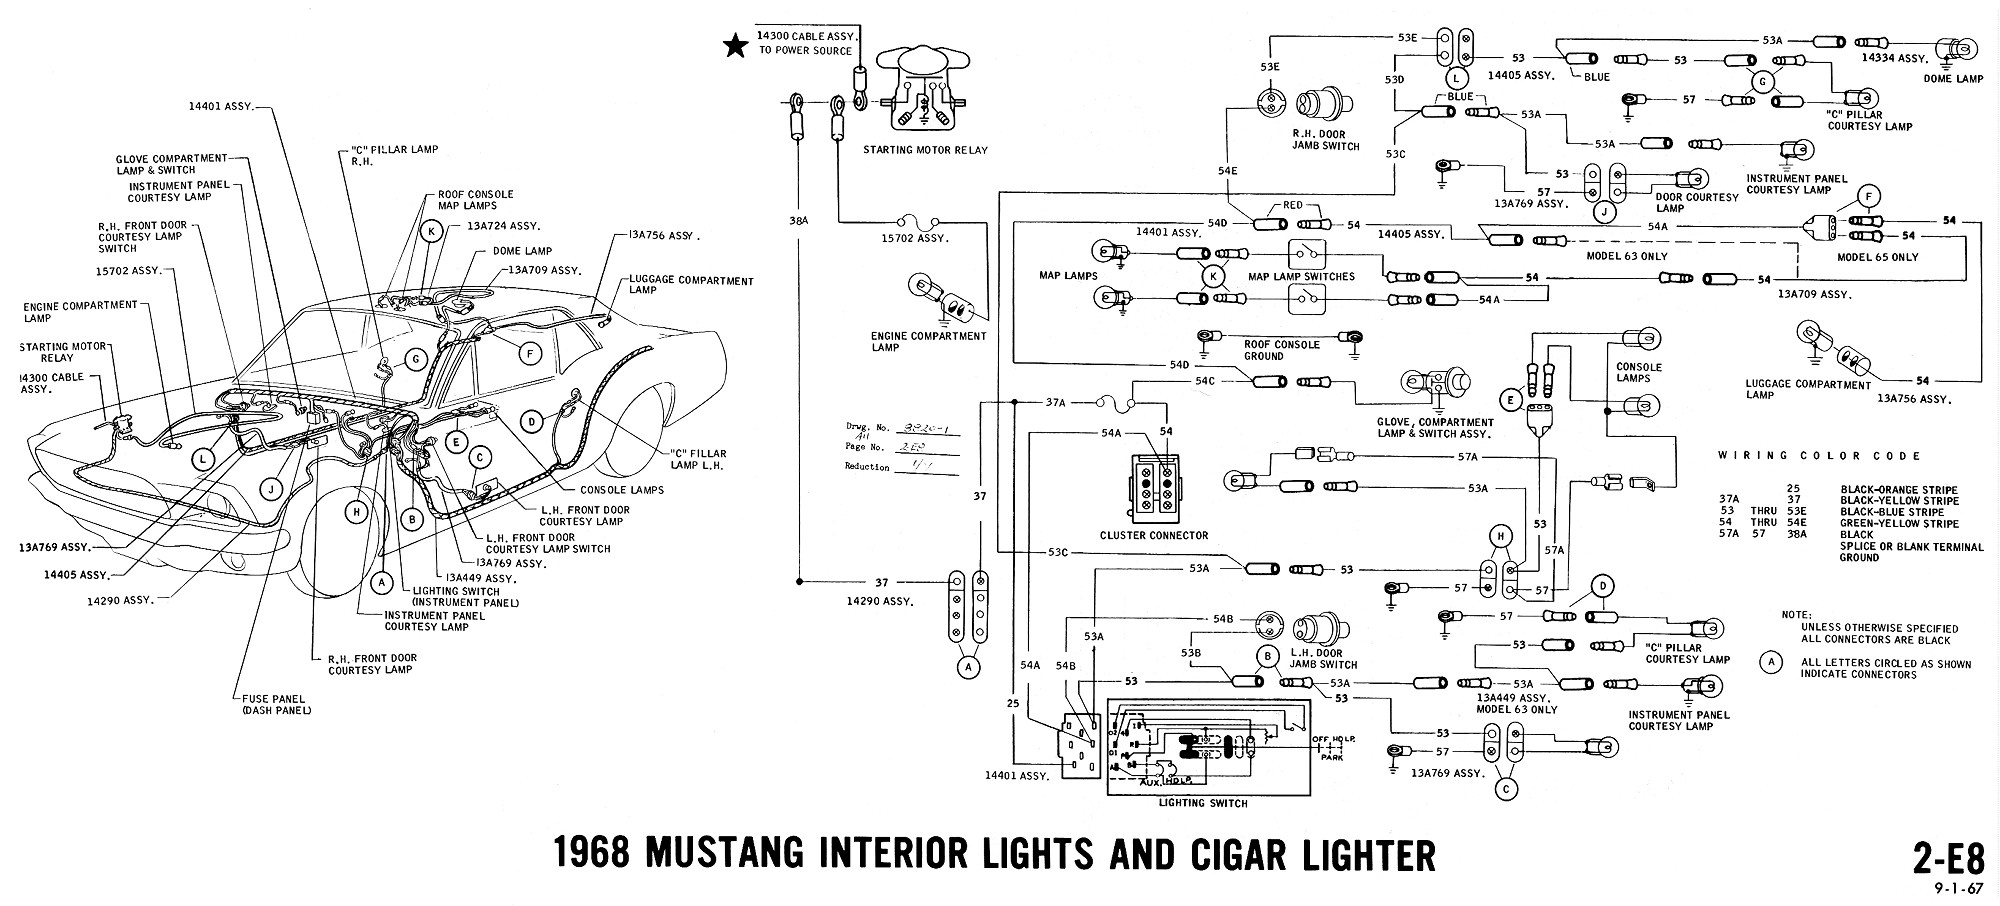 1968 mustang wiring diagram interior lights cigar lighter 1968 mustang wiring diagrams and vacuum schematics average joe 1968 ford mustang wiring diagram at n-0.co